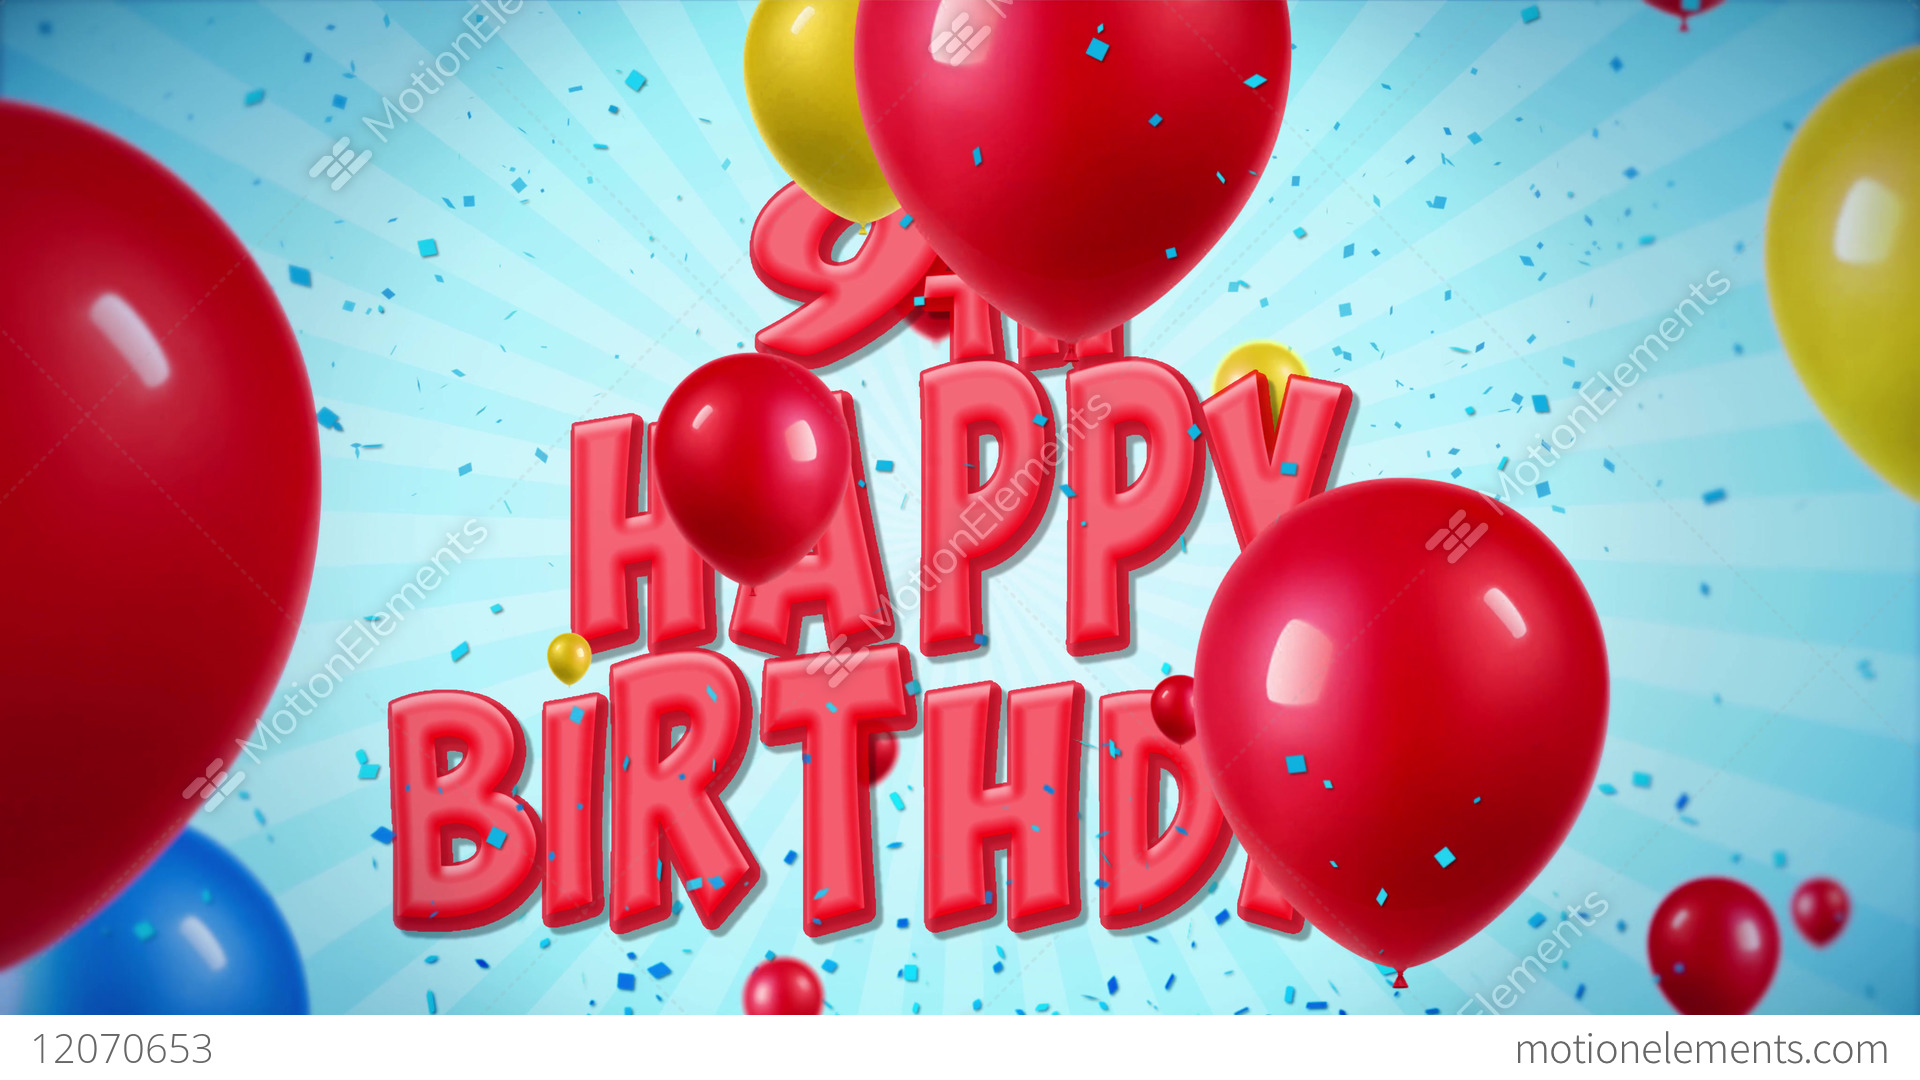 Stock Video Happy Birthday Greeting And Wishes With Balloons Confetti Looped Motion Jpg 1920x1080 9th